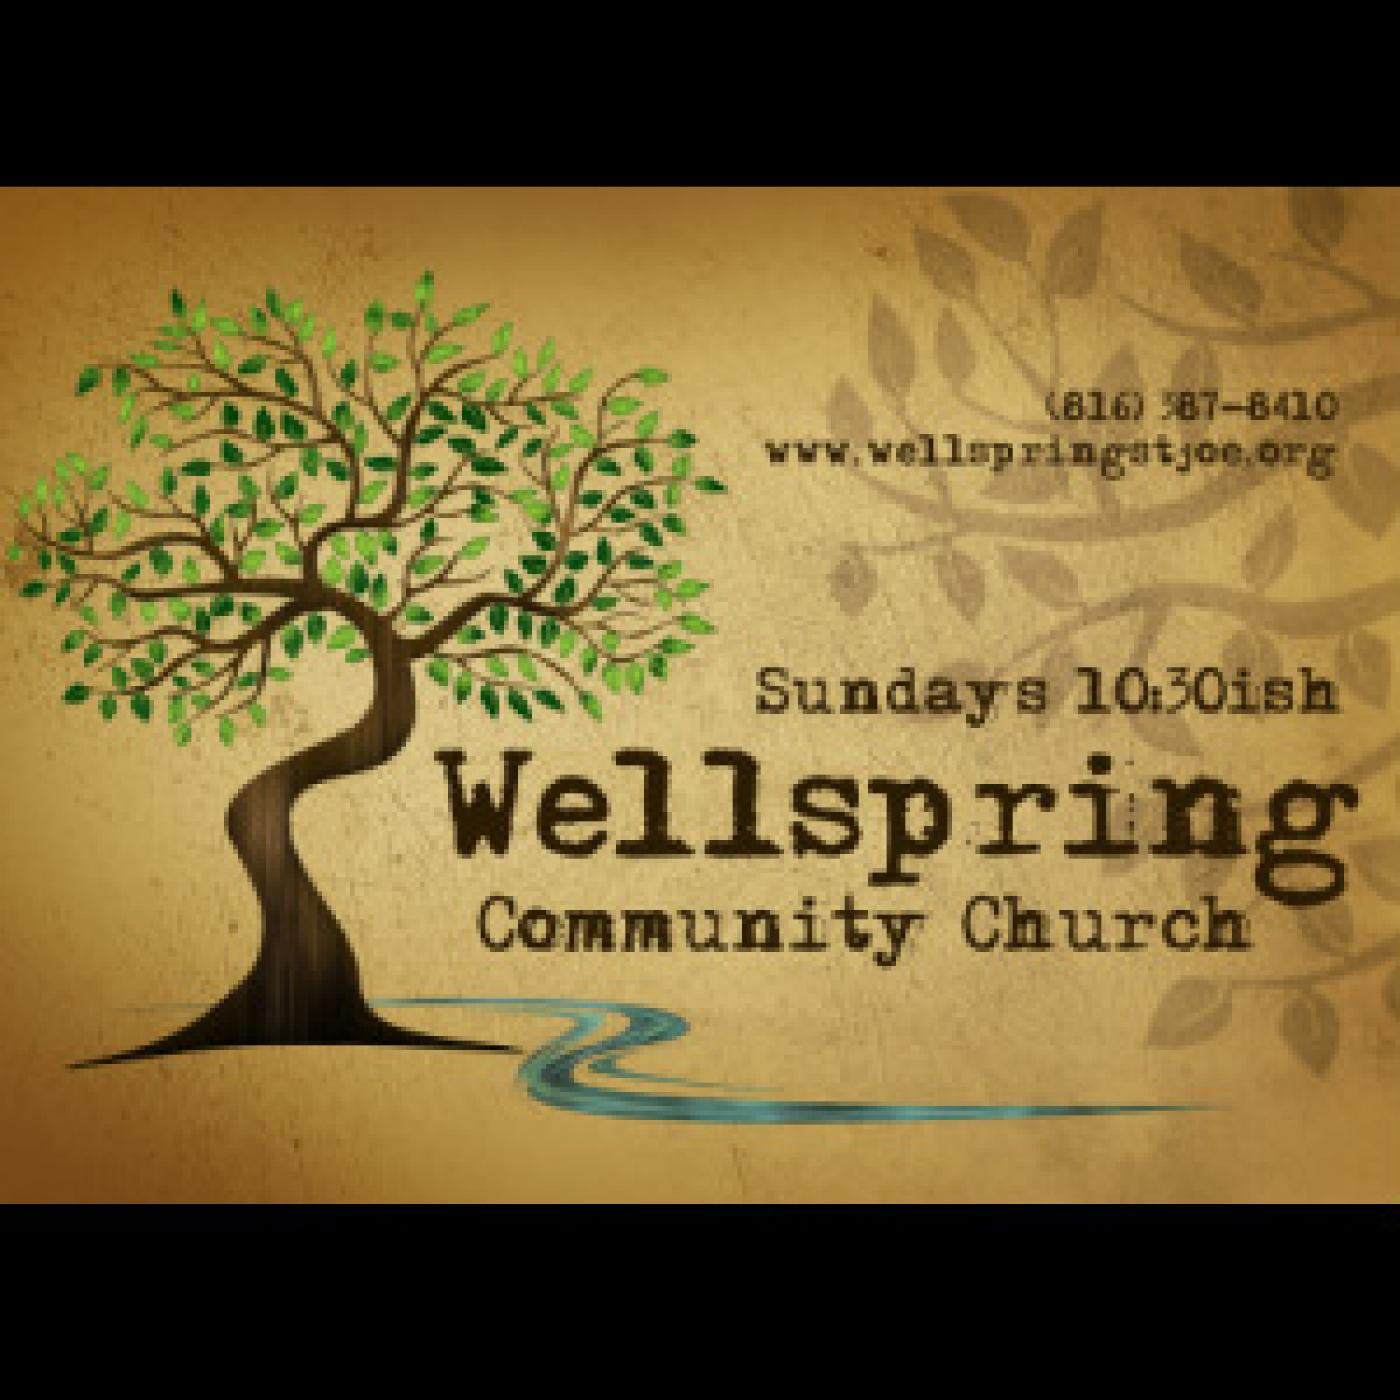 Wellspring Community Church weekly message